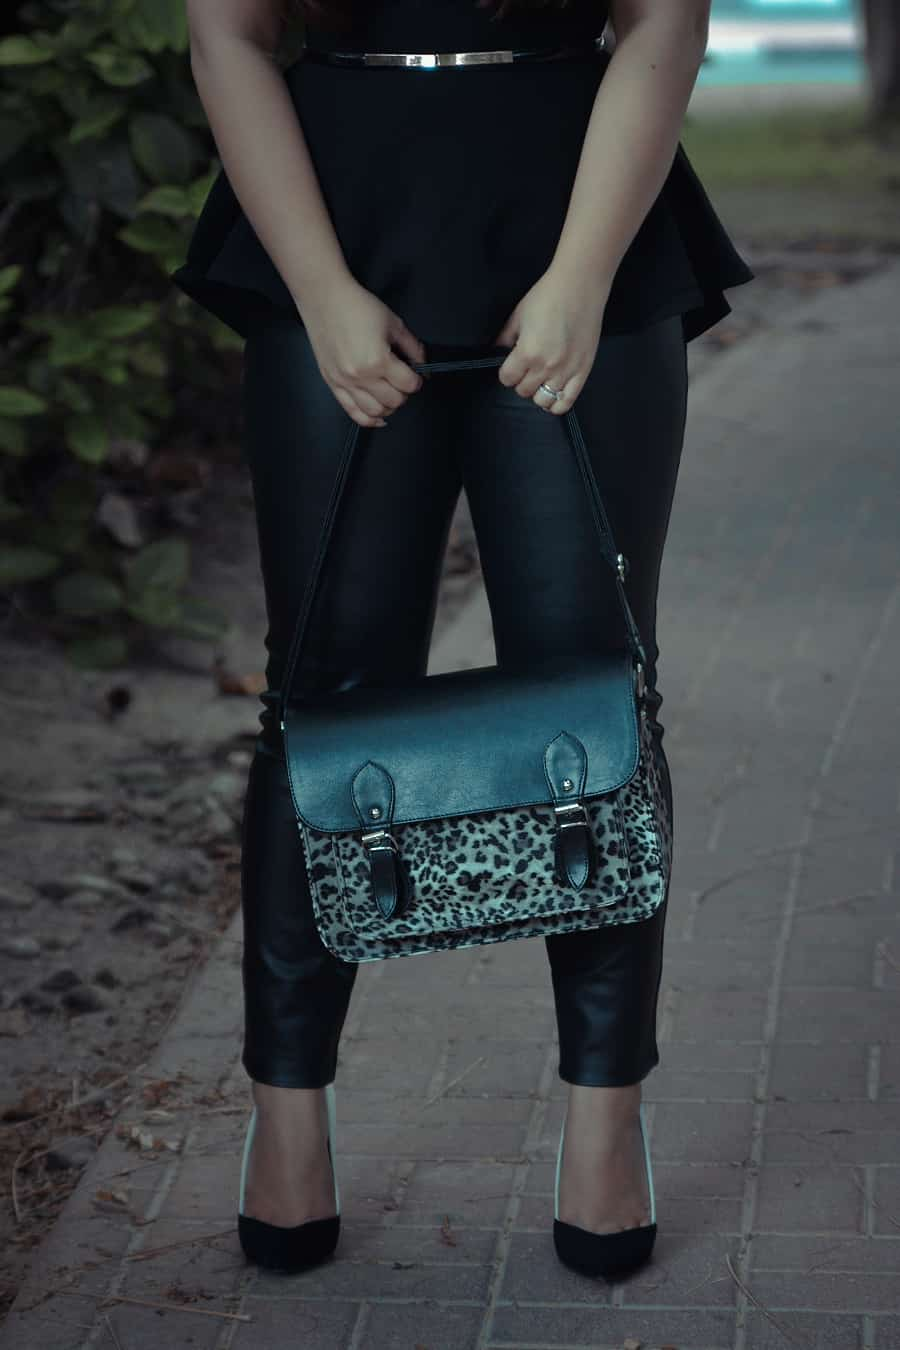 The Leopard Satchel